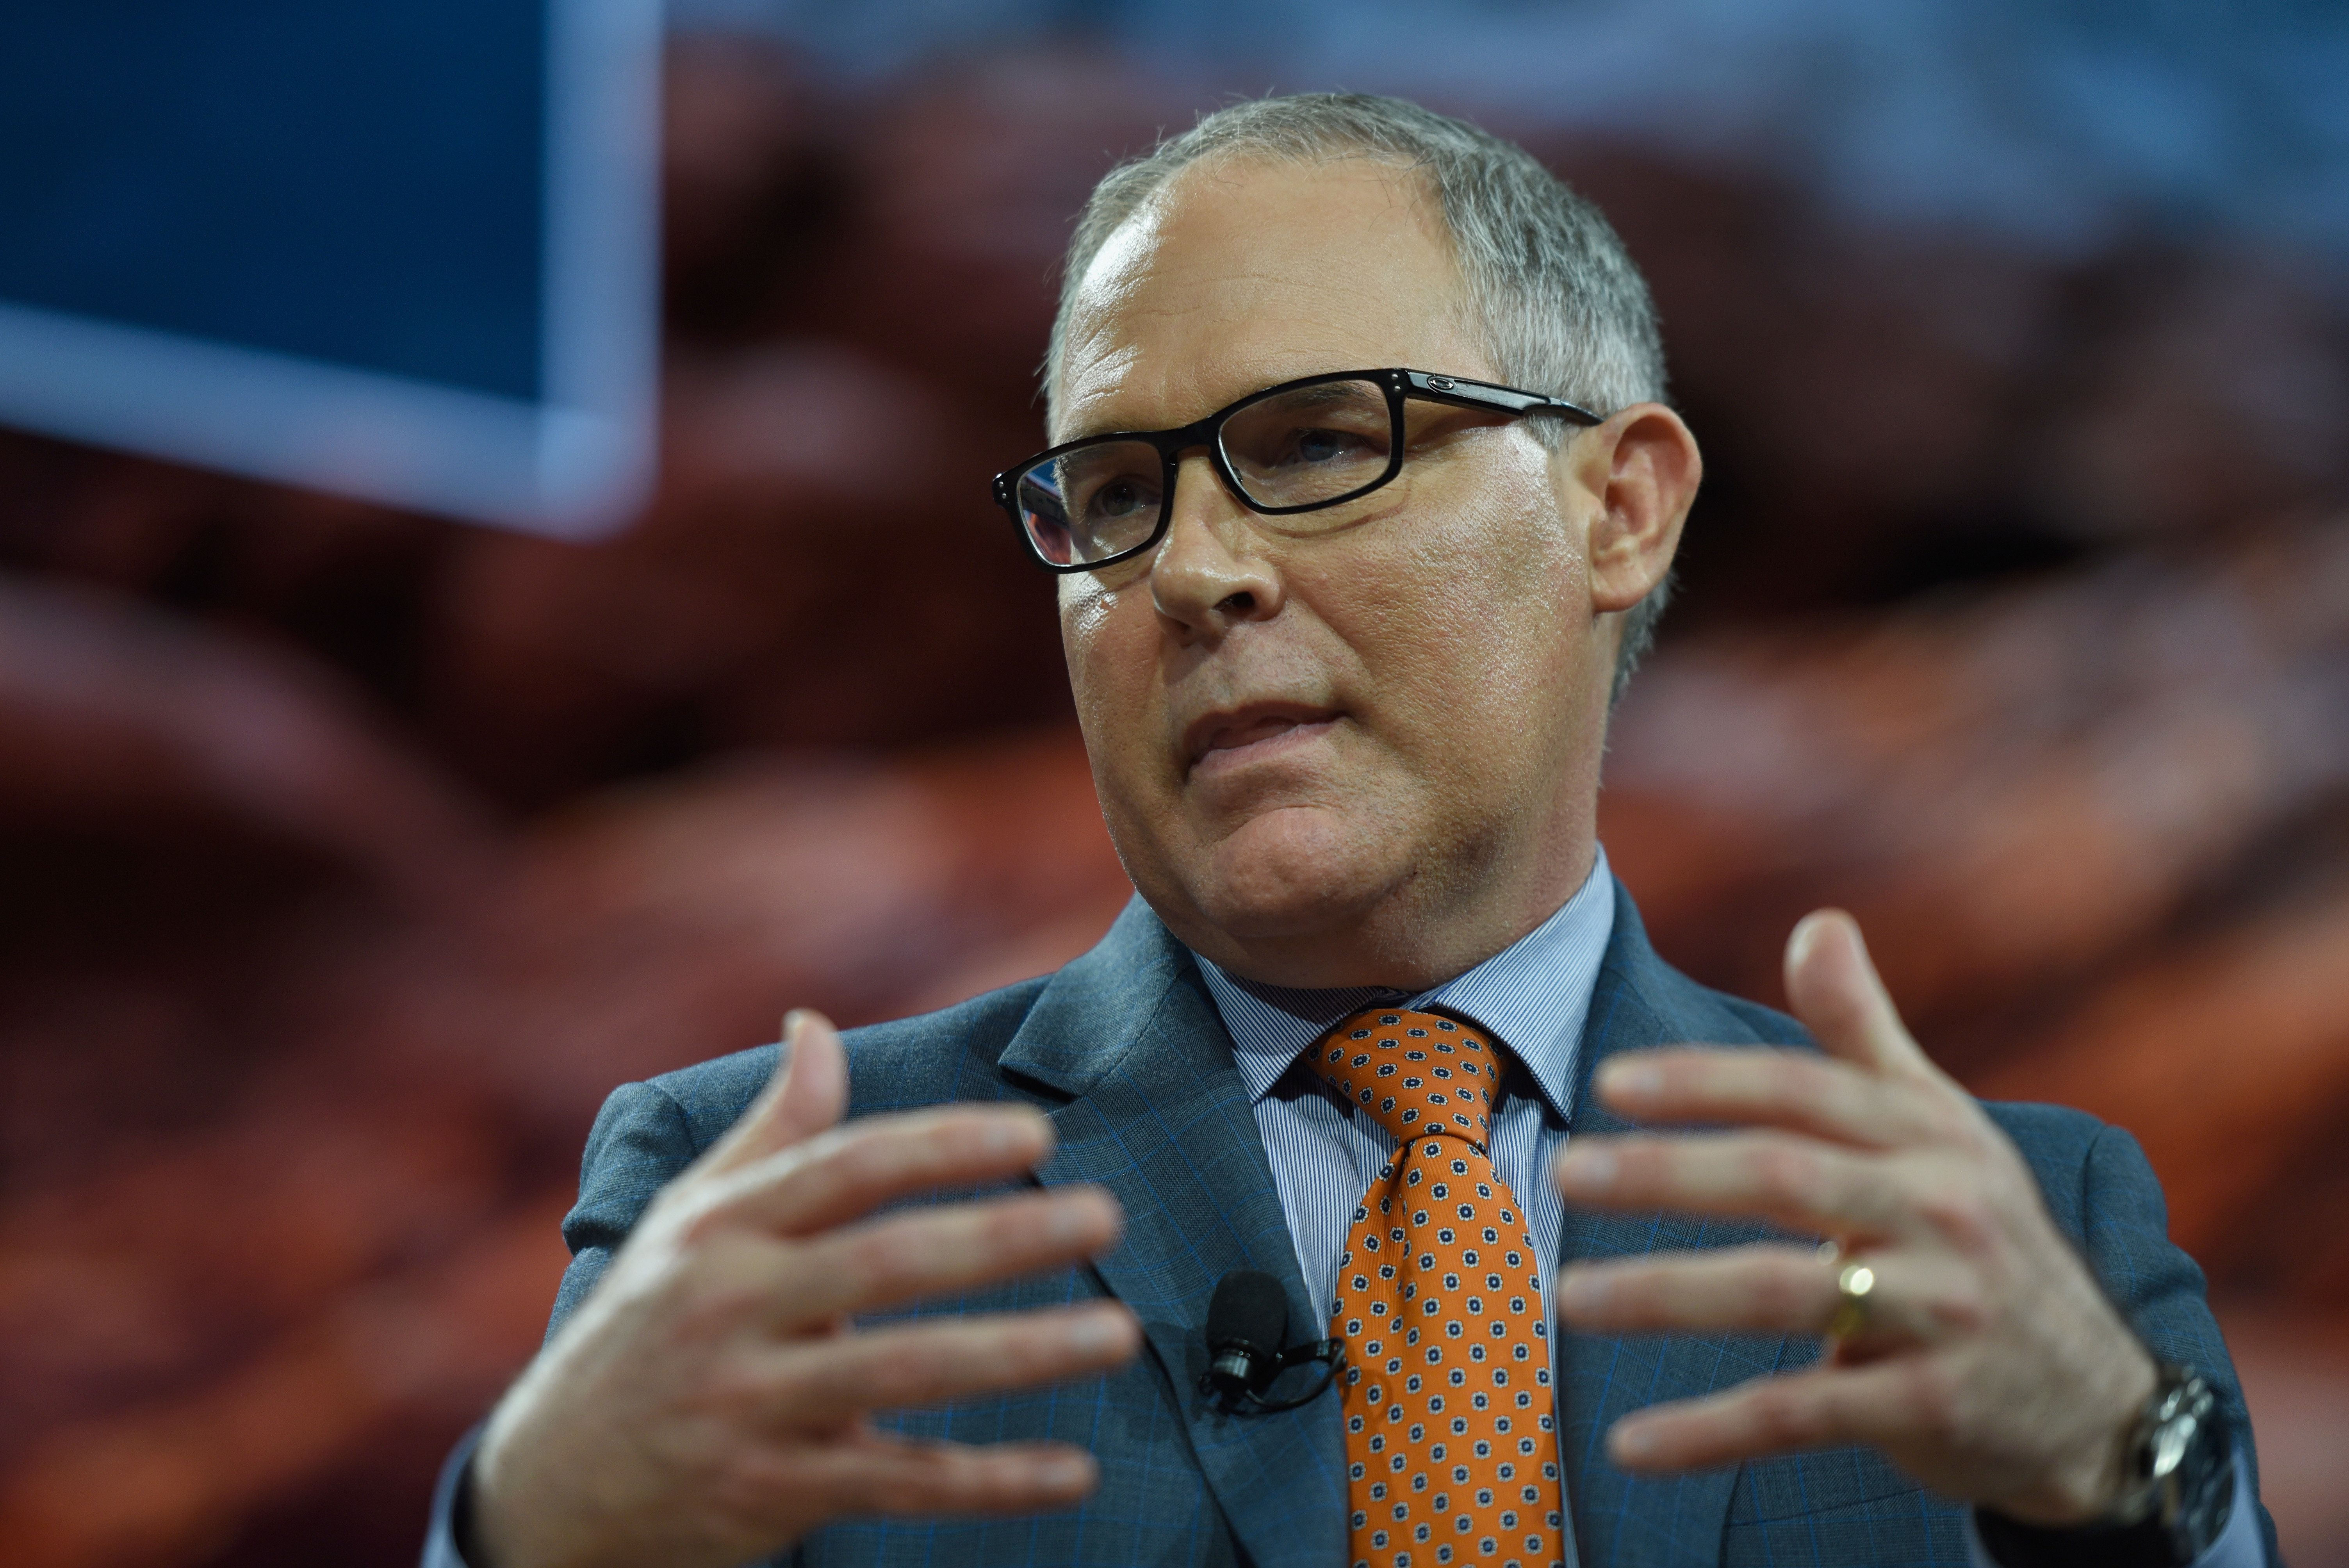 NEW YORK, NY - SEPTEMBER 19:  Scott Pruitt, administrator of U.S. EPA speaks at The 2017 Concordia Annual Summit at Grand Hyatt New York on September 19, 2017 in New York City.  (Photo by Riccardo Savi/Getty Images for Concordia Summit)